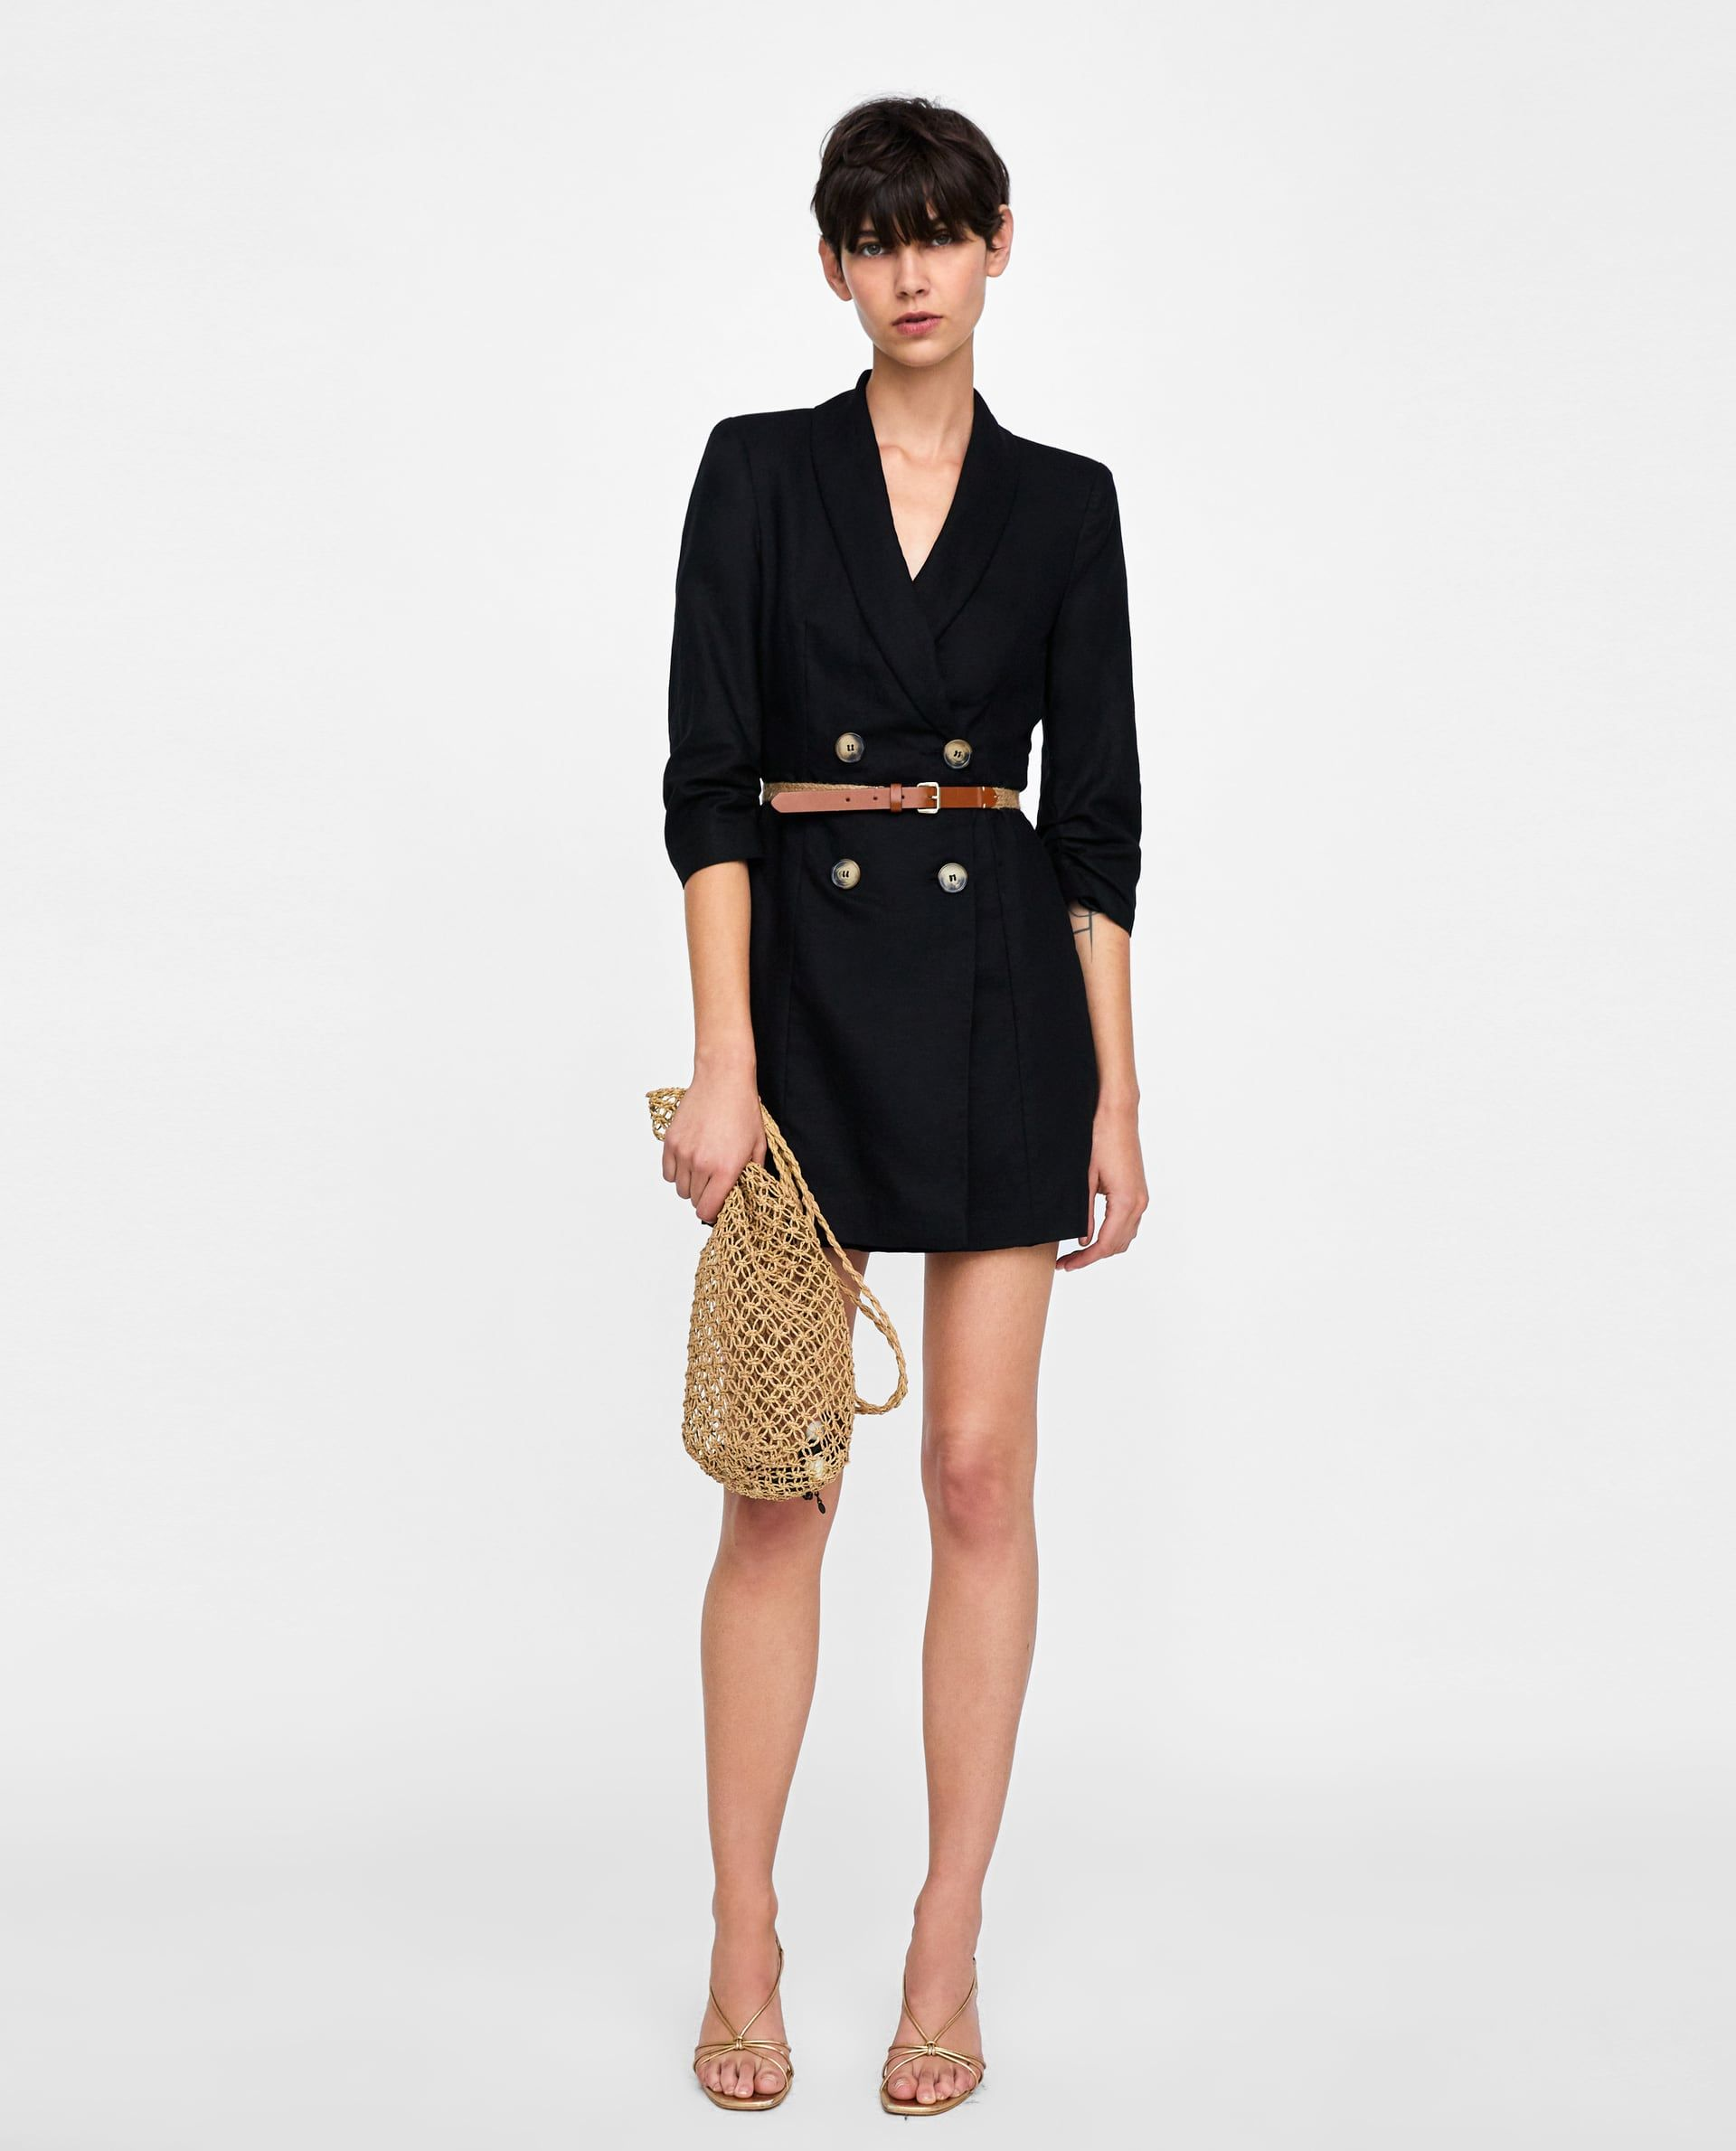 f579e1fc ZARA - AW/18 - BELTED BLAZER DRESS #fashion #iwouldwearthat #streetstyle  #instagram #shopping #onlineshopping Follow @coletteahsekal for more